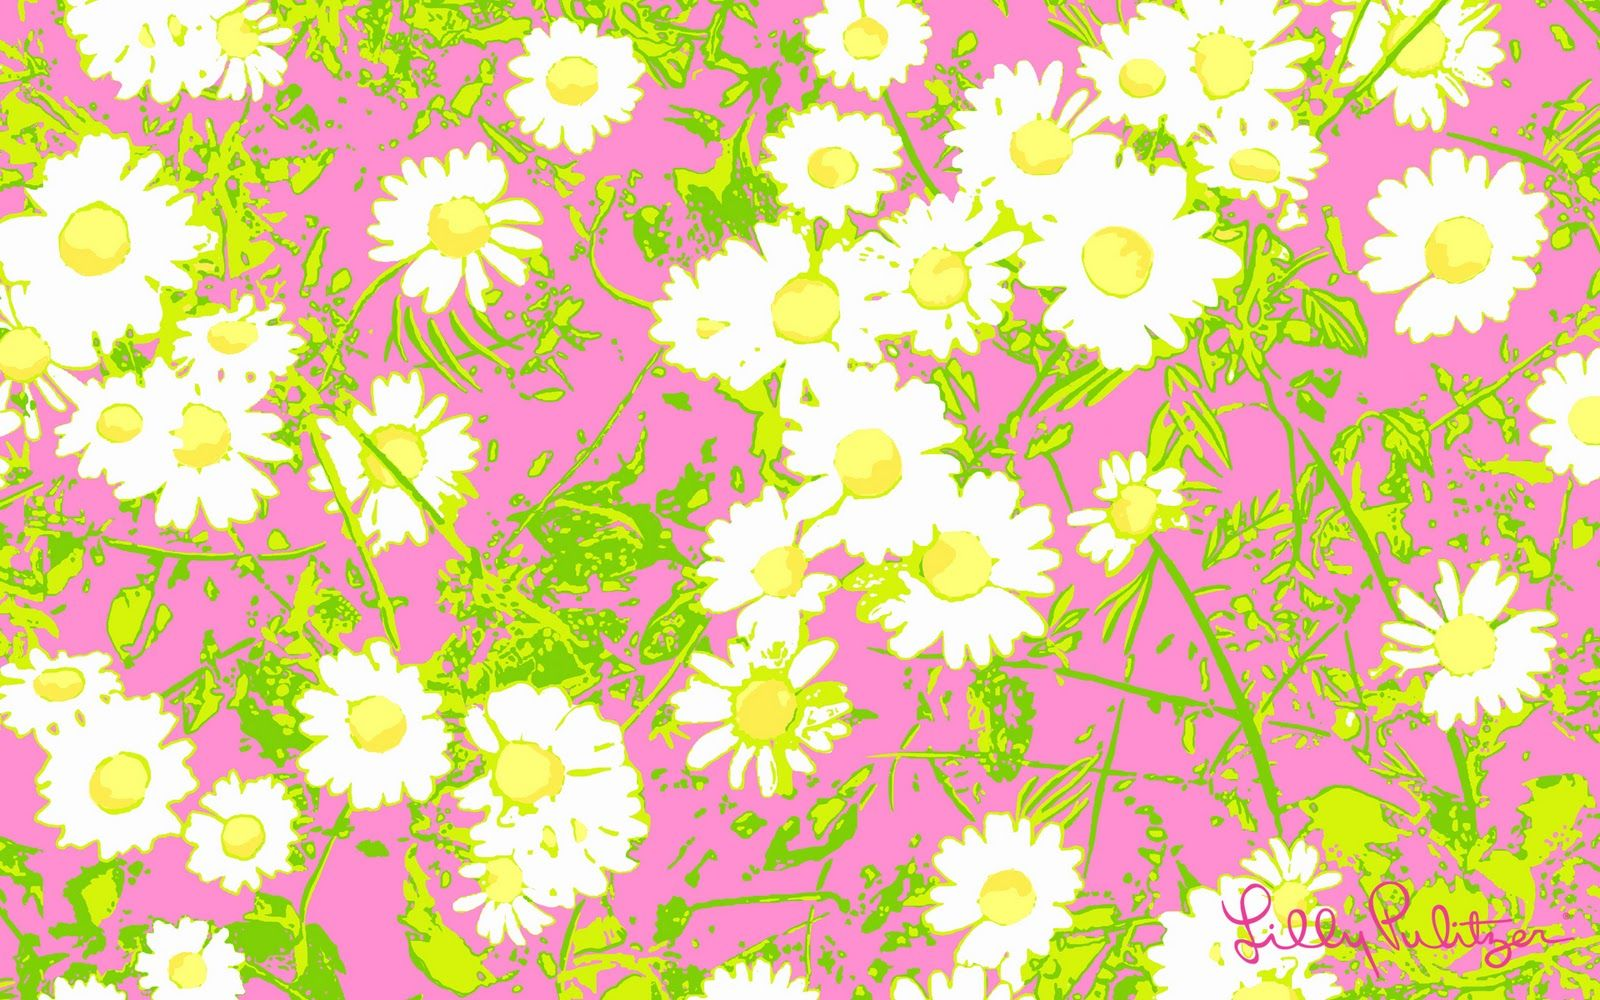 Canadianprep Lilly Desktop Wallpaper Laptop Wallpaper Desktop Wallpapers Lily Pulitzer Wallpaper Vintage Desktop Wallpapers